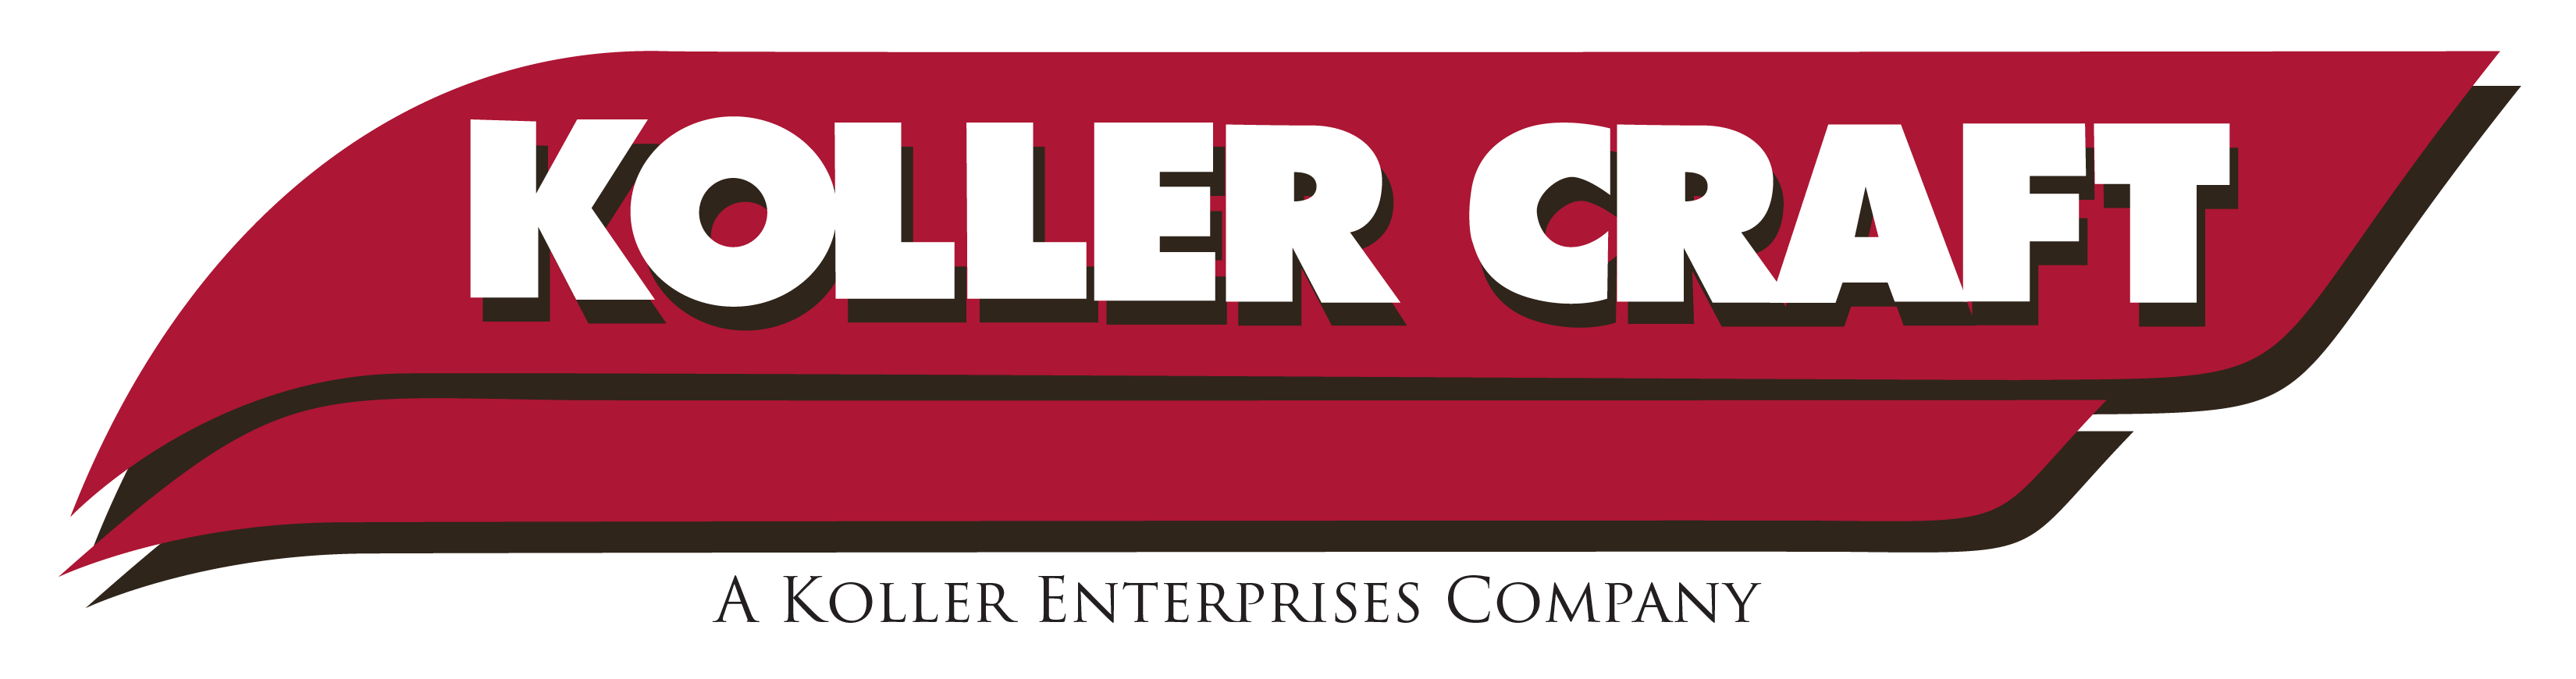 Koller Craft, LLC